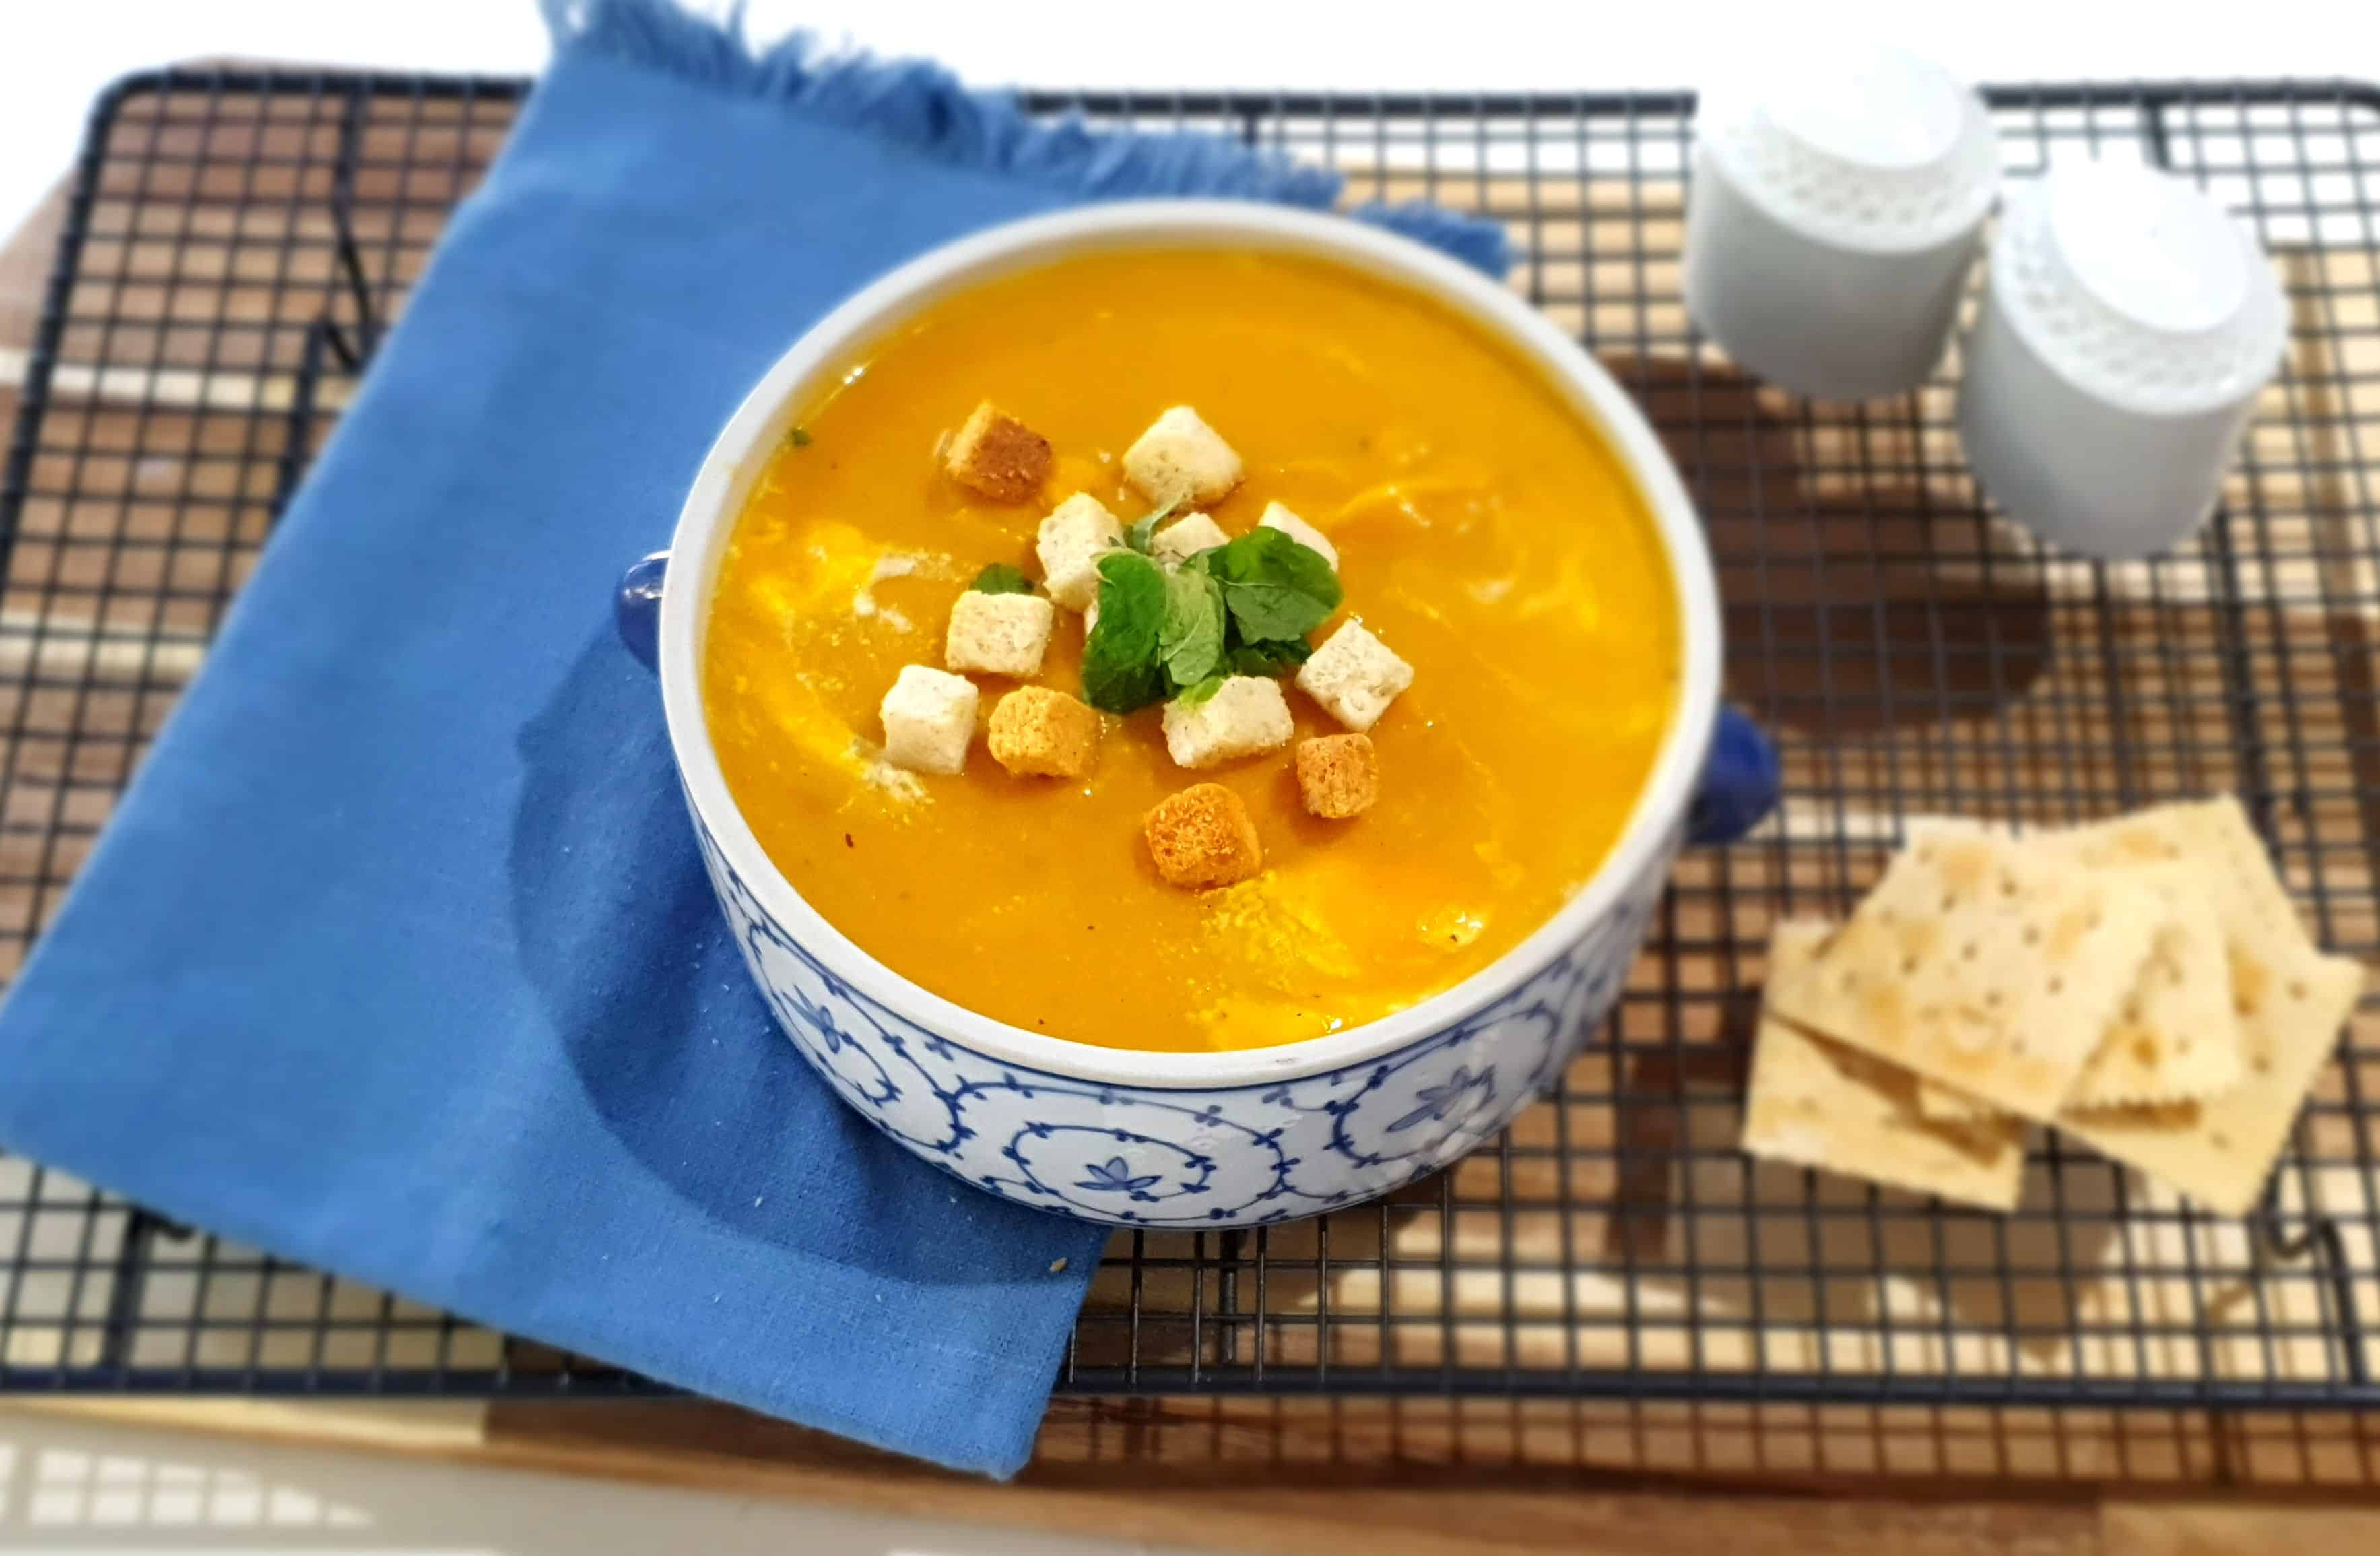 Roasted Pumpkin and Garlic Soup Recipe for Fall